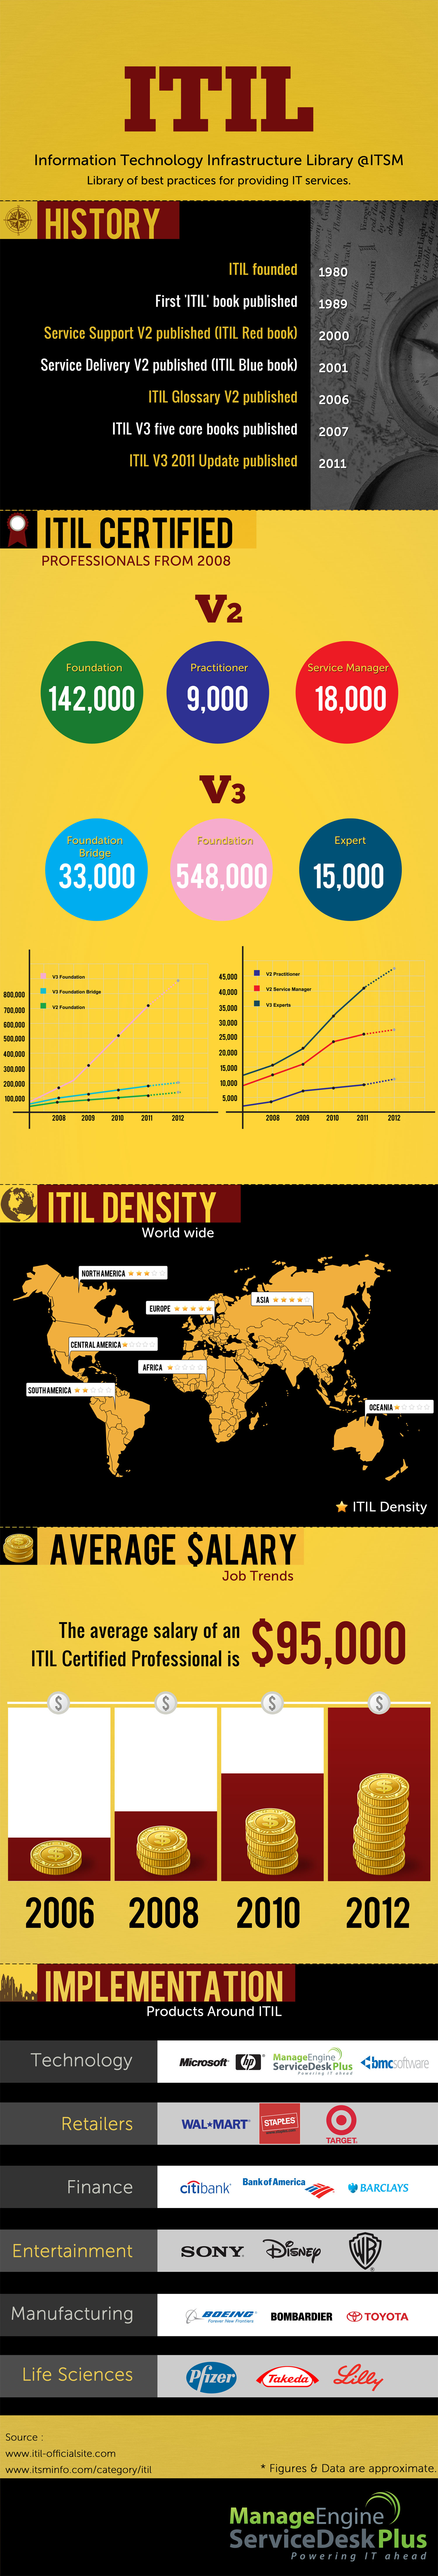 Itil certification manageengine blog itil infographics xflitez Image collections